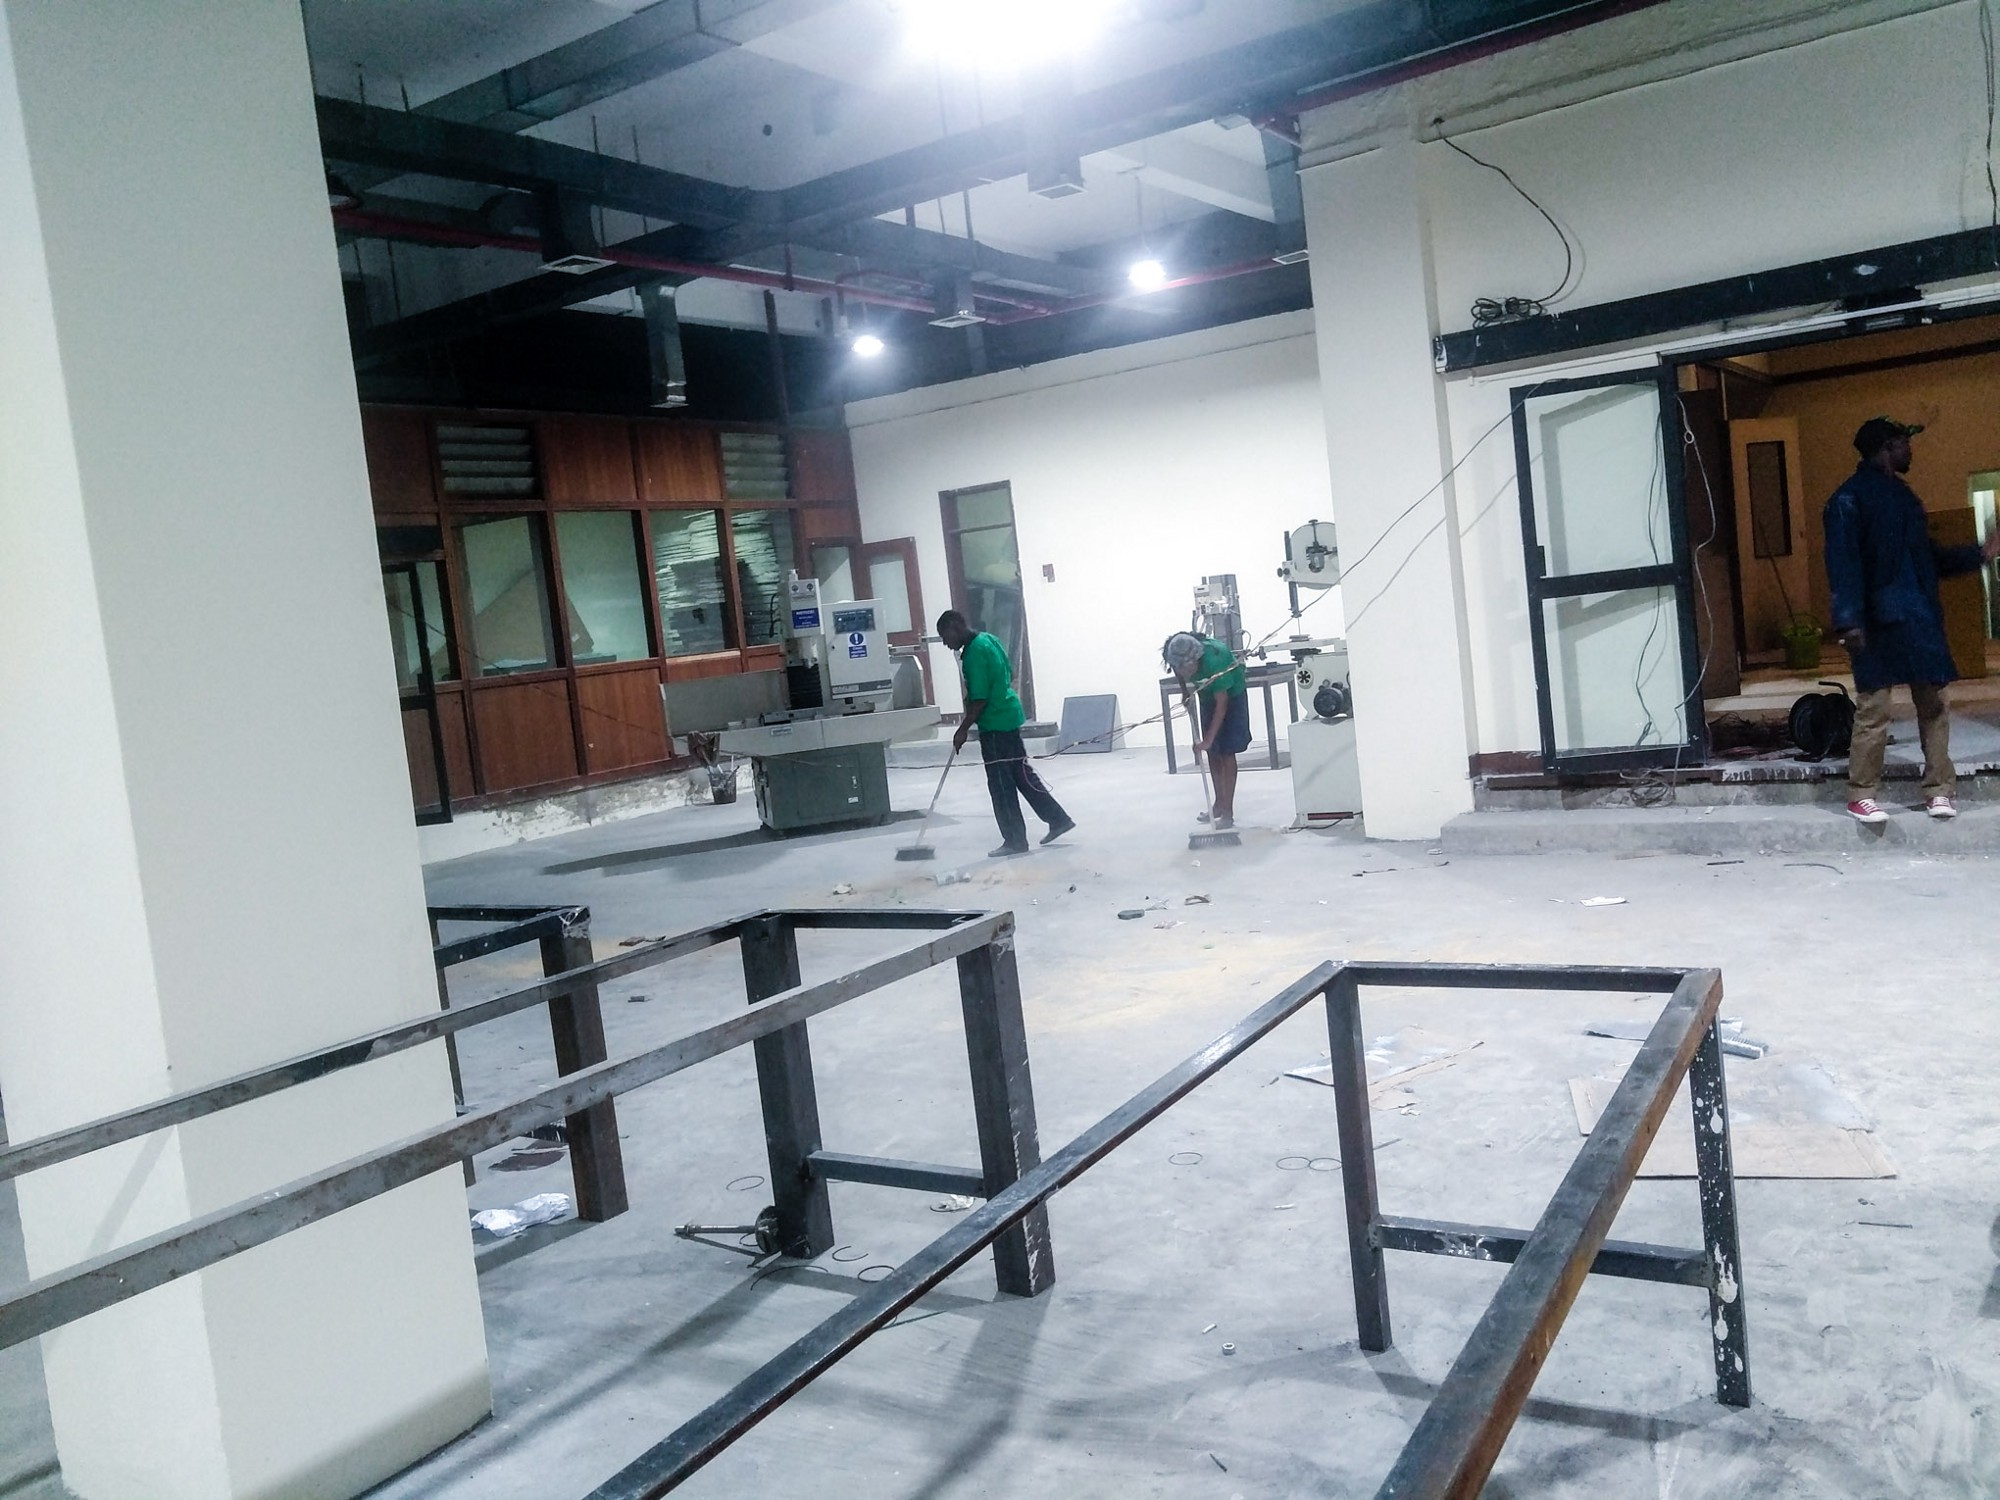 The ground floor workshop under construction at Gearbox in Industrial area